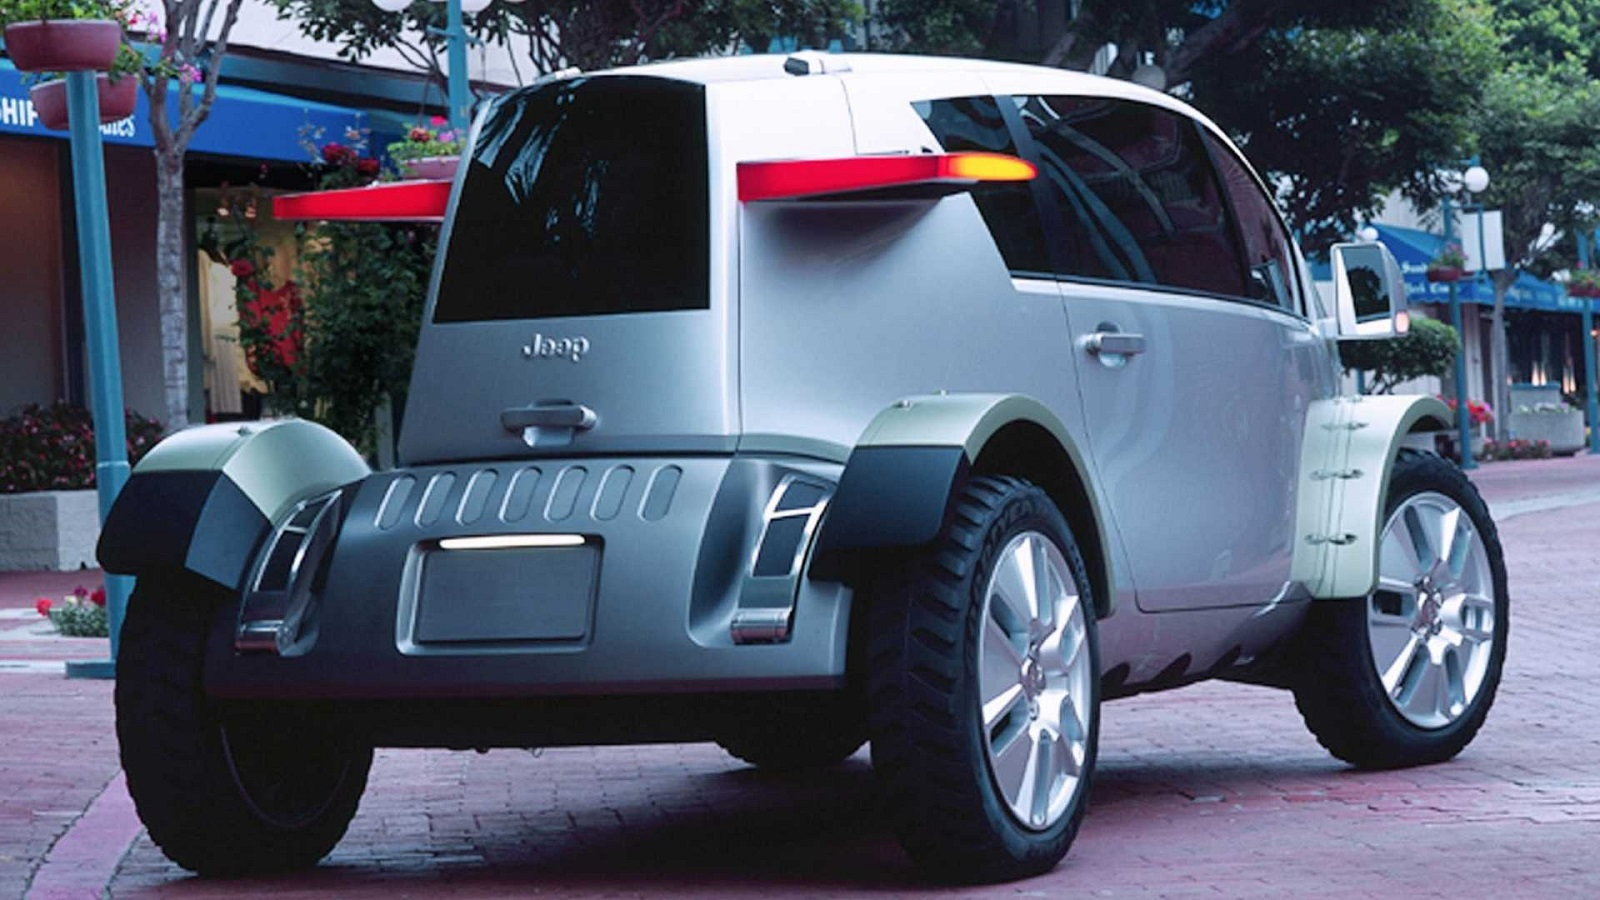 Could You See a Version of This Jeep in the Future?